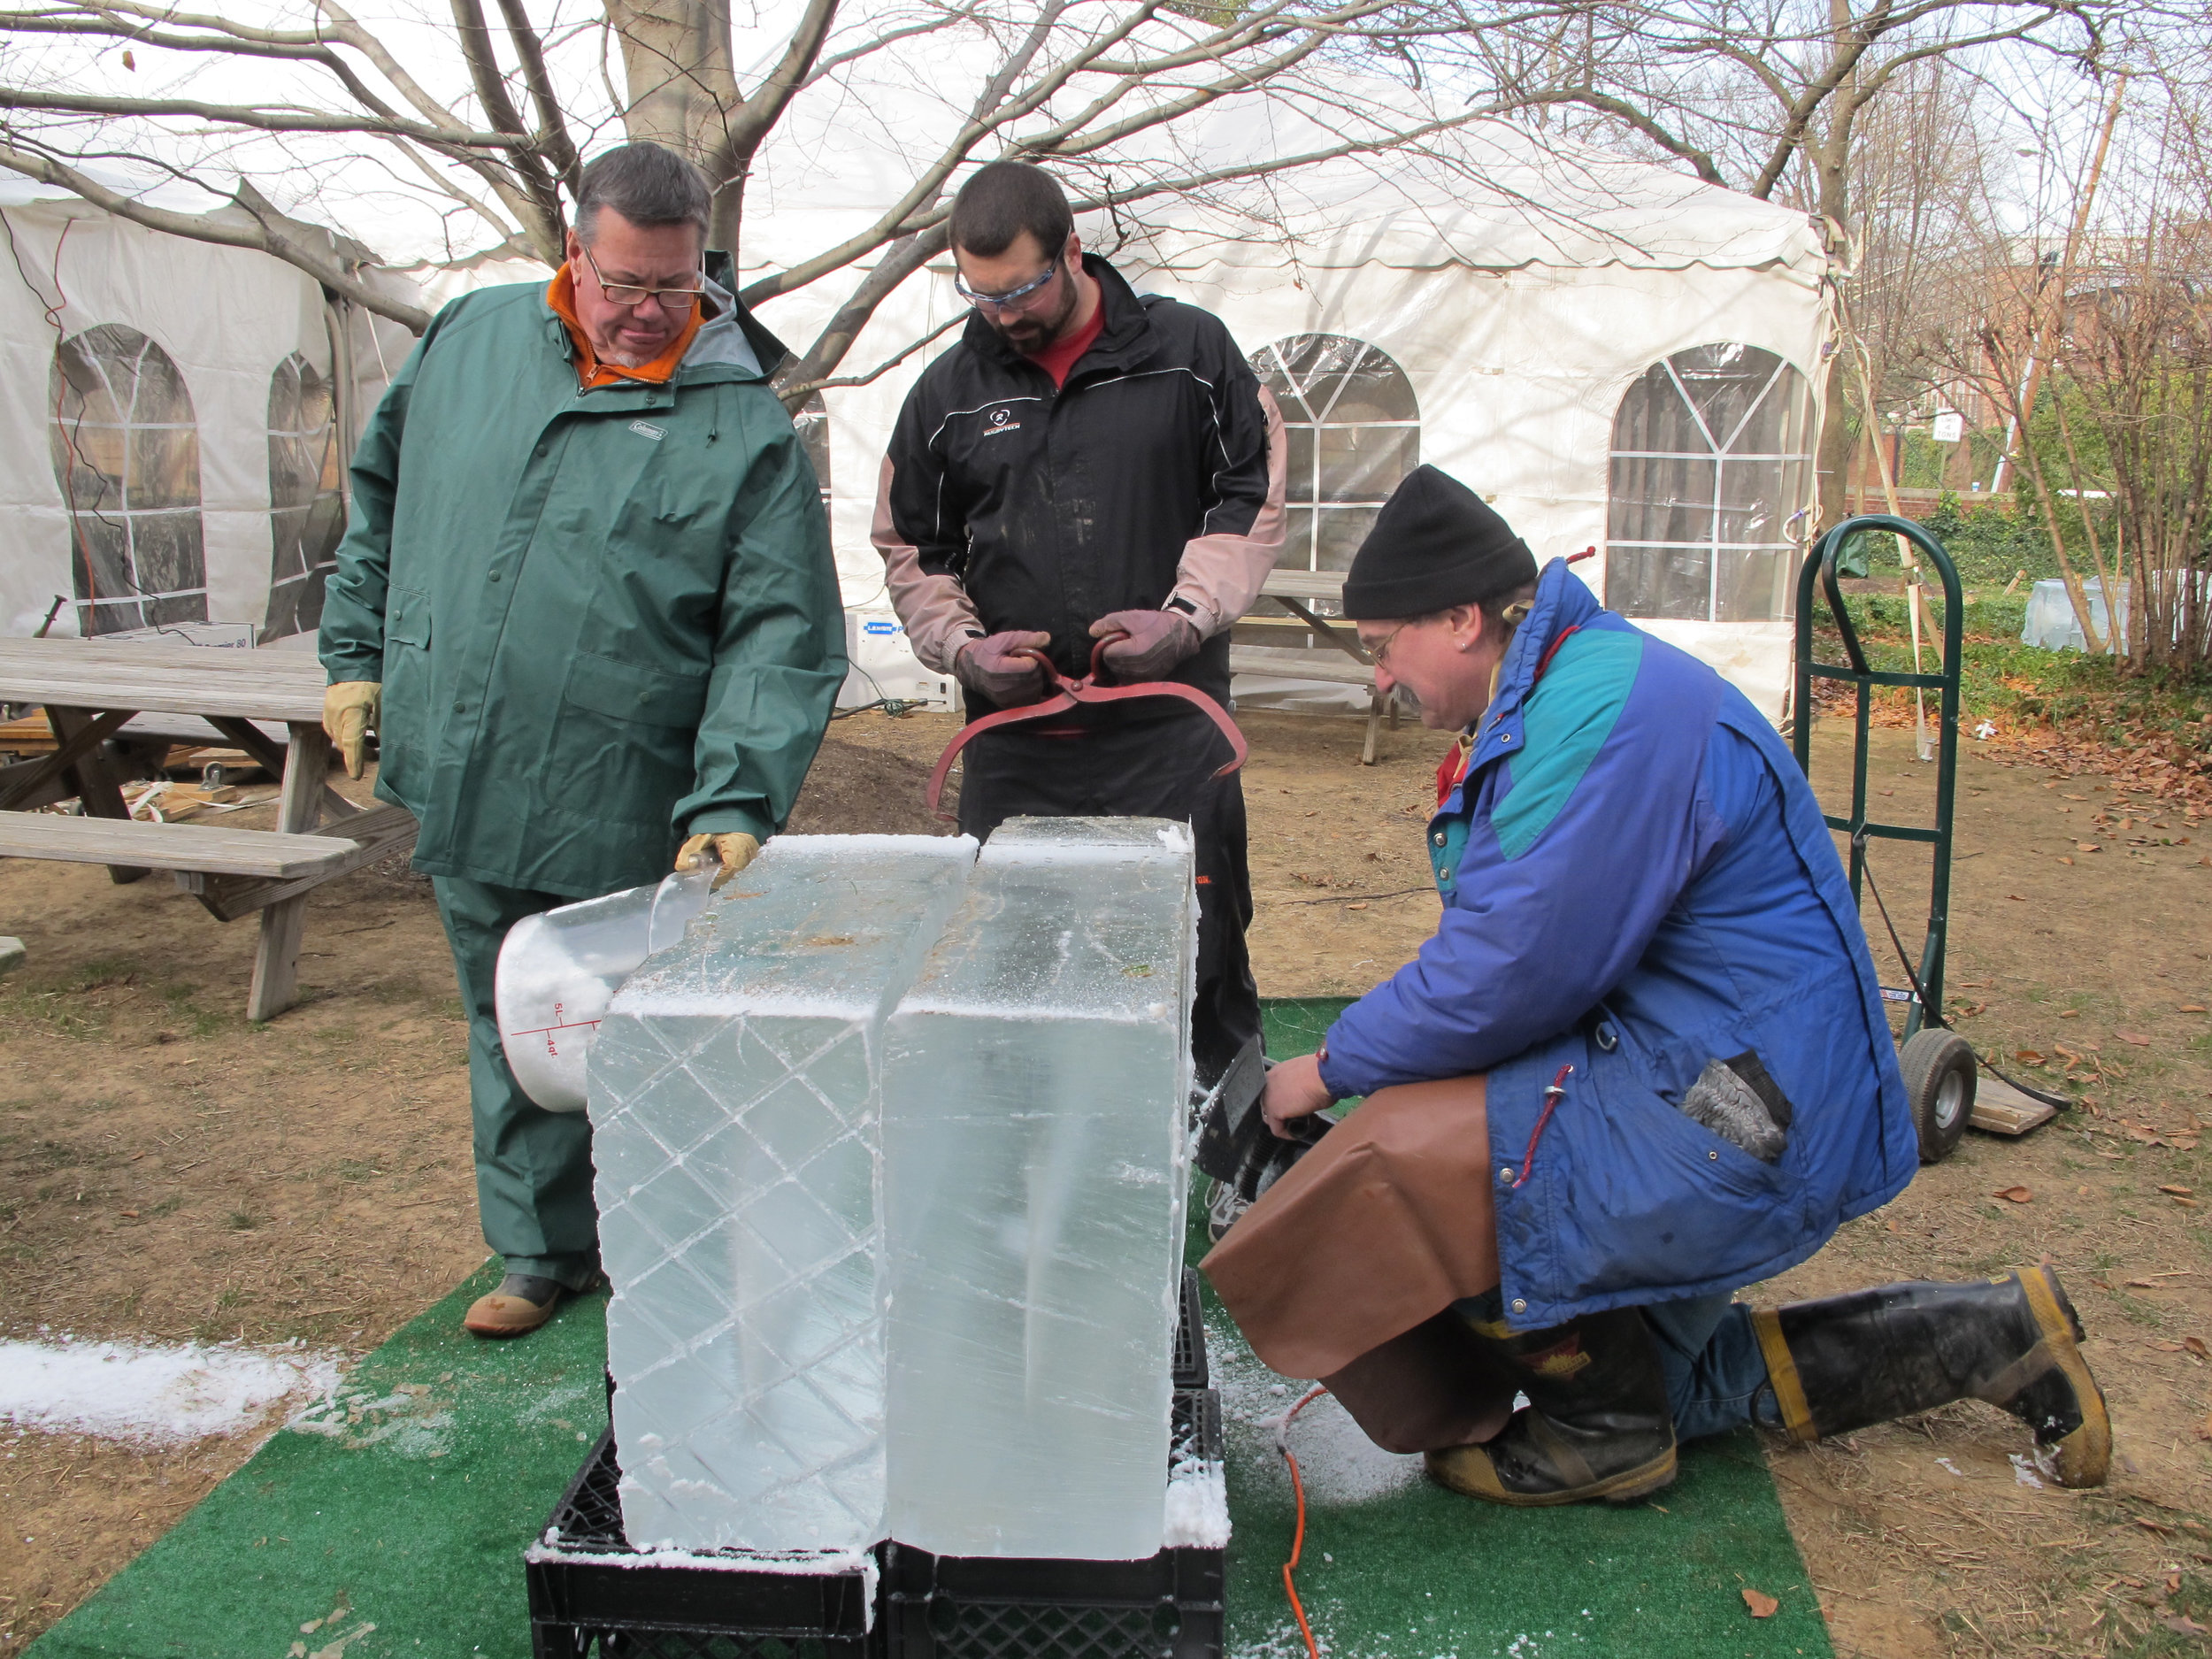 Dennis Normile making an ice sculpture